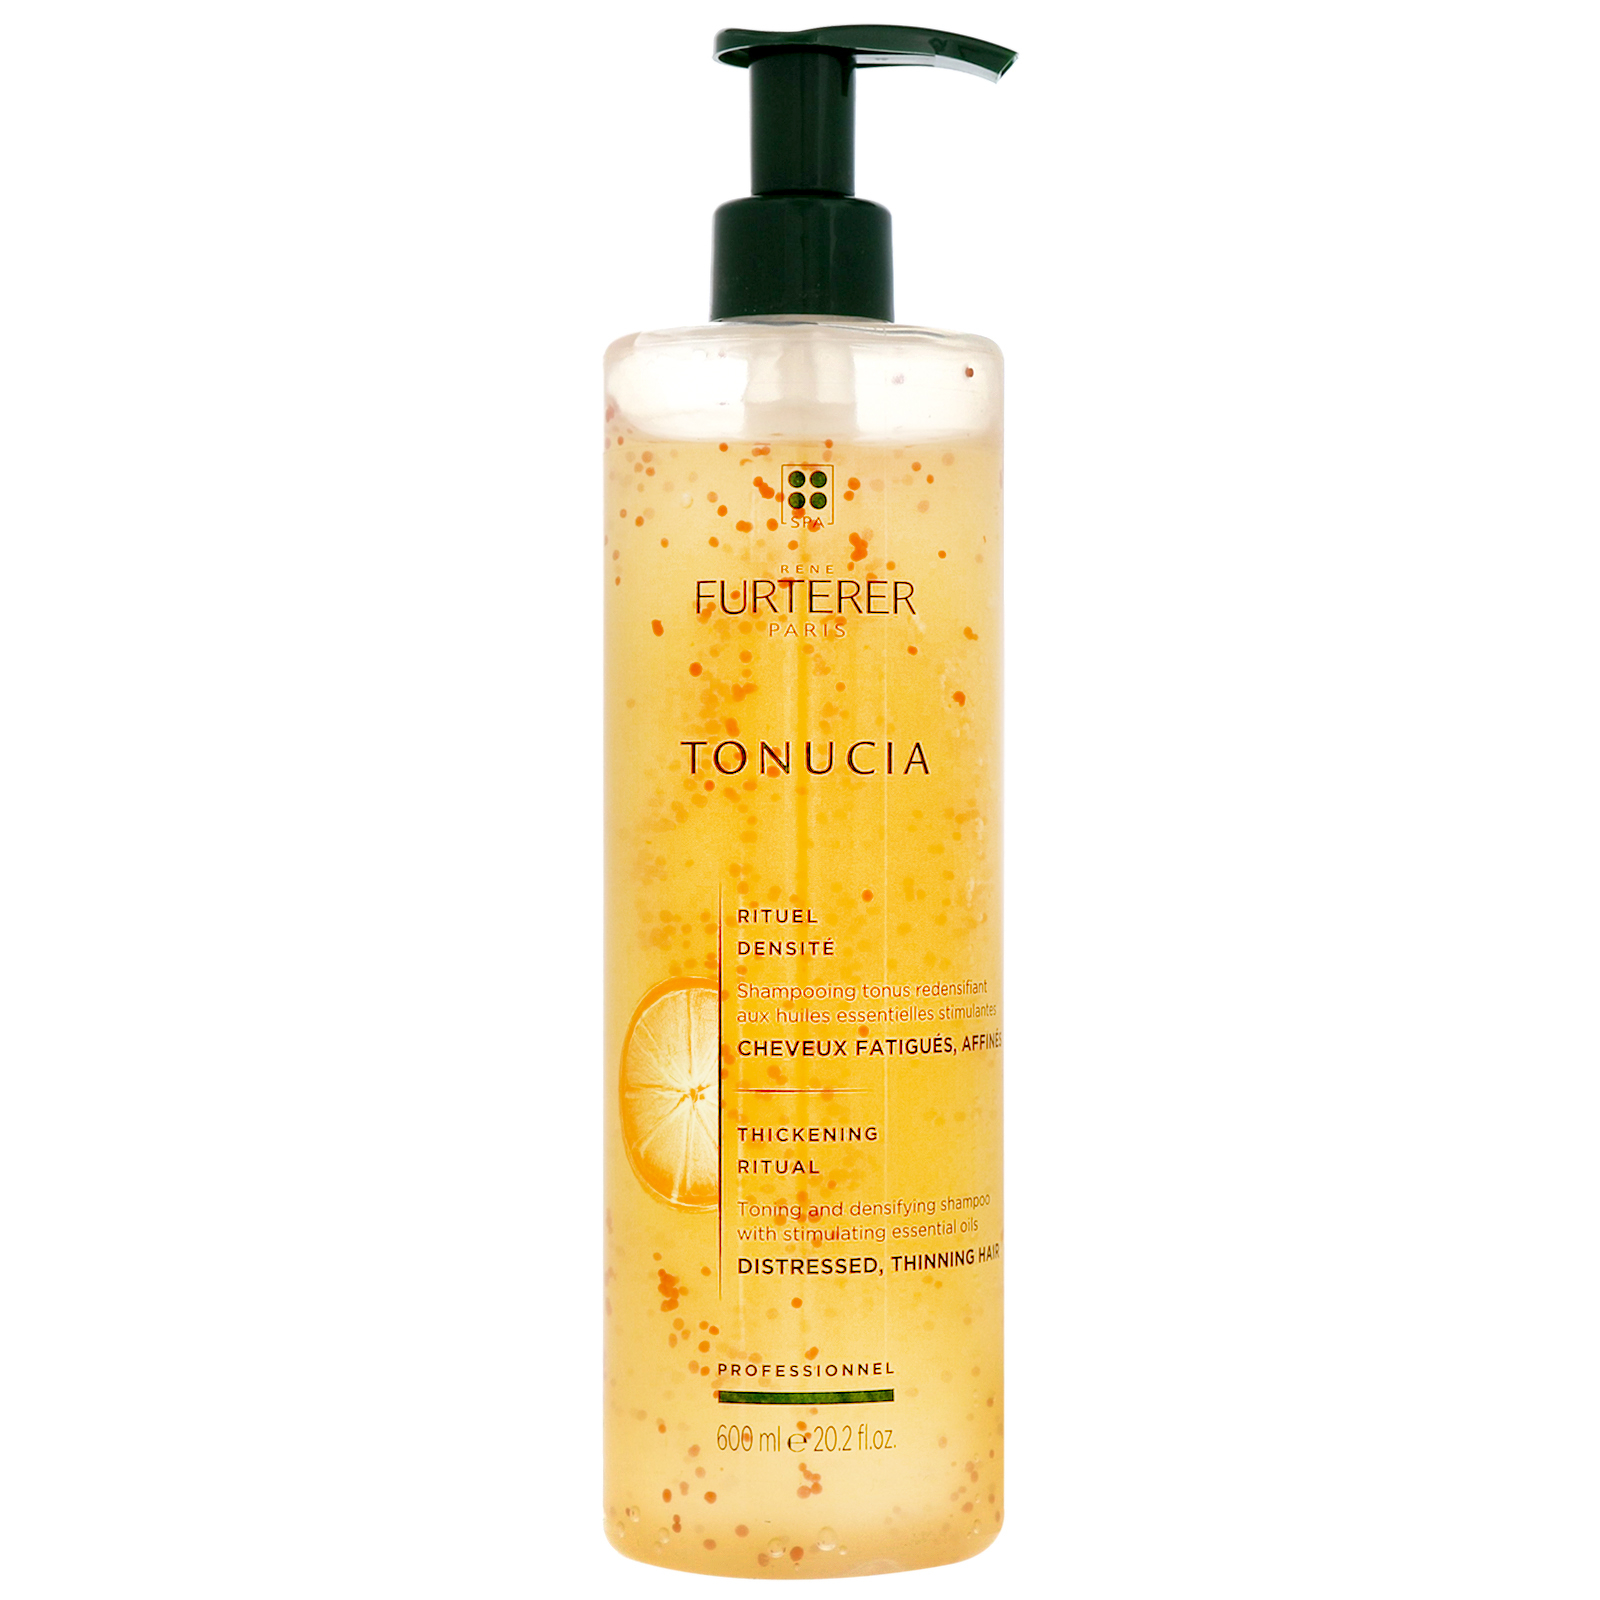 Rene Furterer Tonucia Thickening Ritual: Toning and Densifying Shampoo 600ml